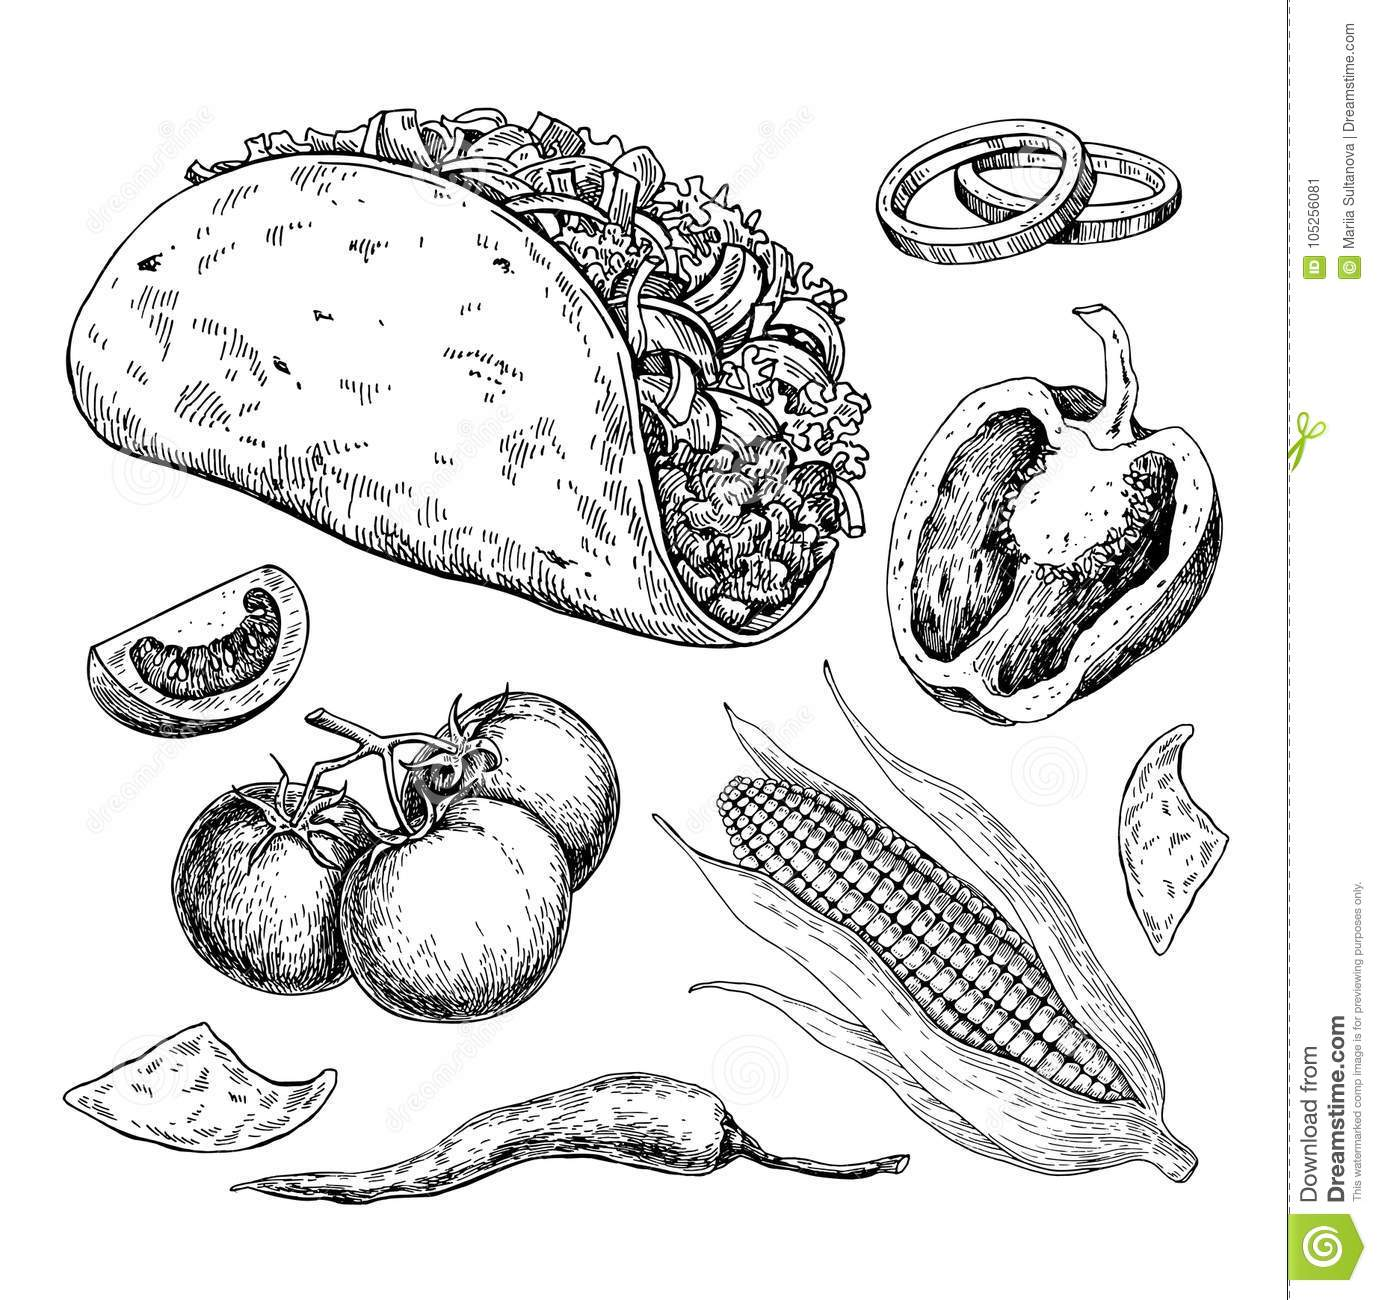 Taco Drawing With Vegetable Traditional Mexican Food